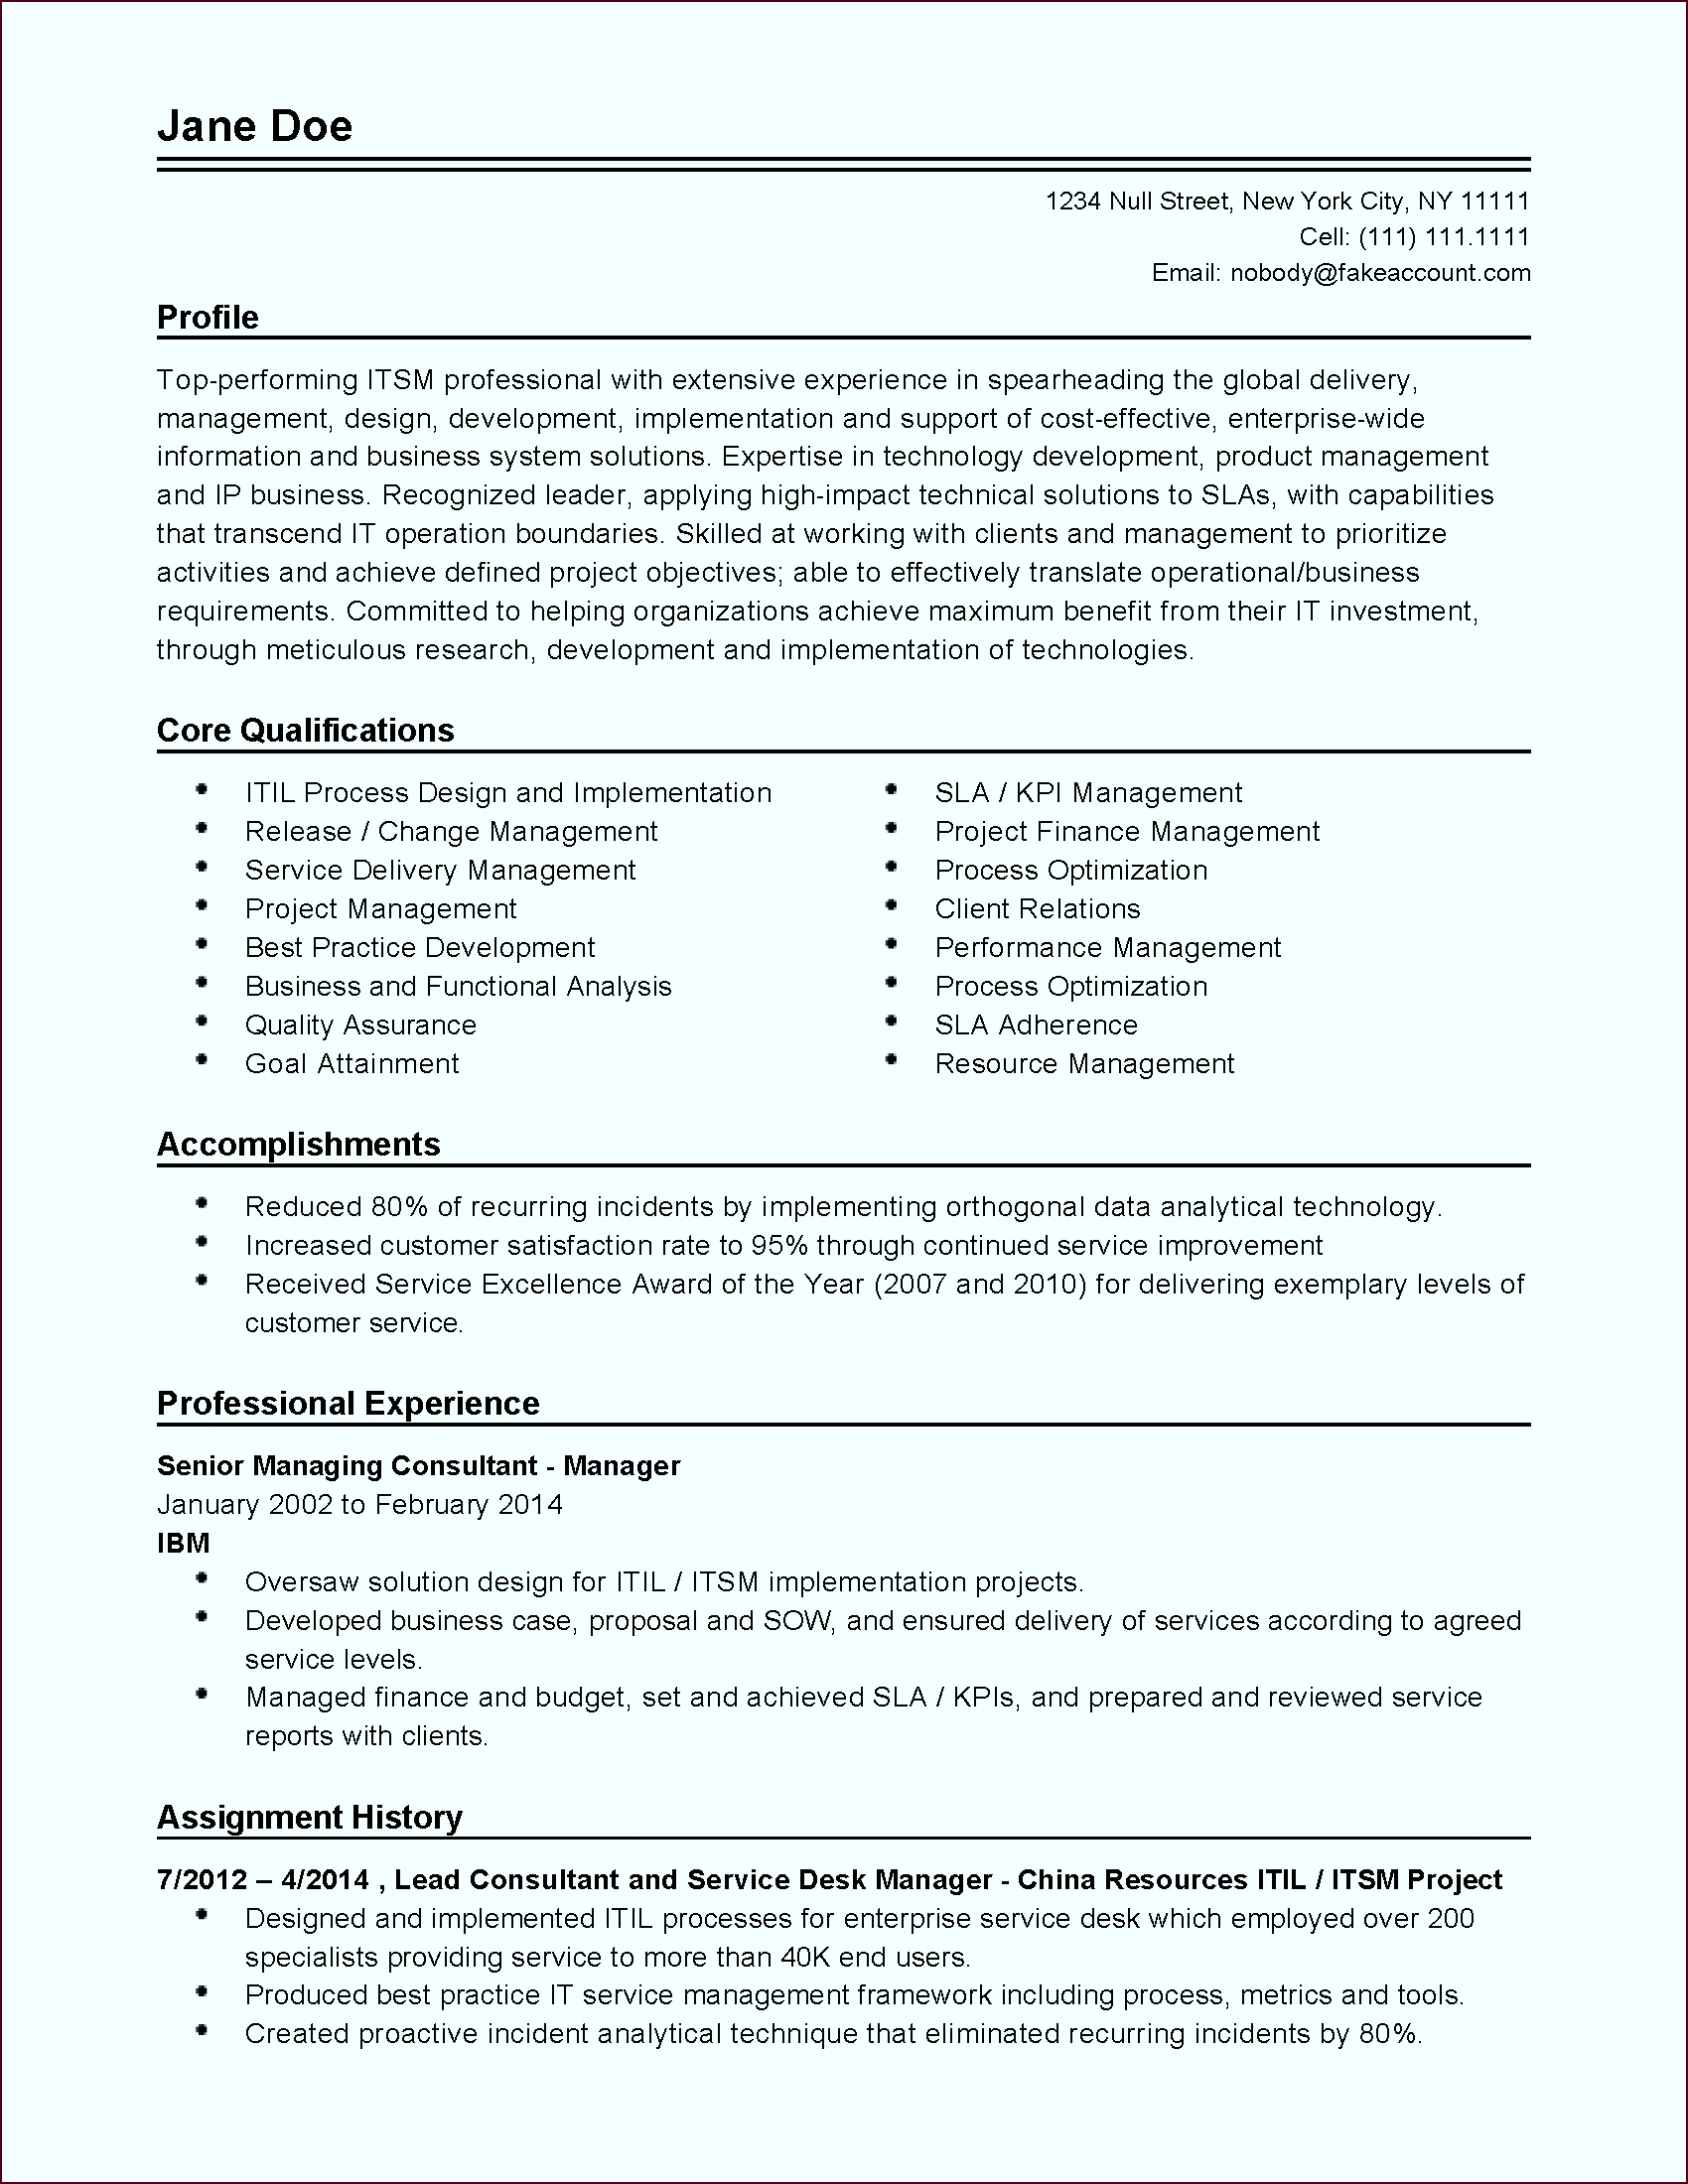 Difference Between Cover Letter and Resume Fresh Od Consultant Cover Letter Fungram youfe